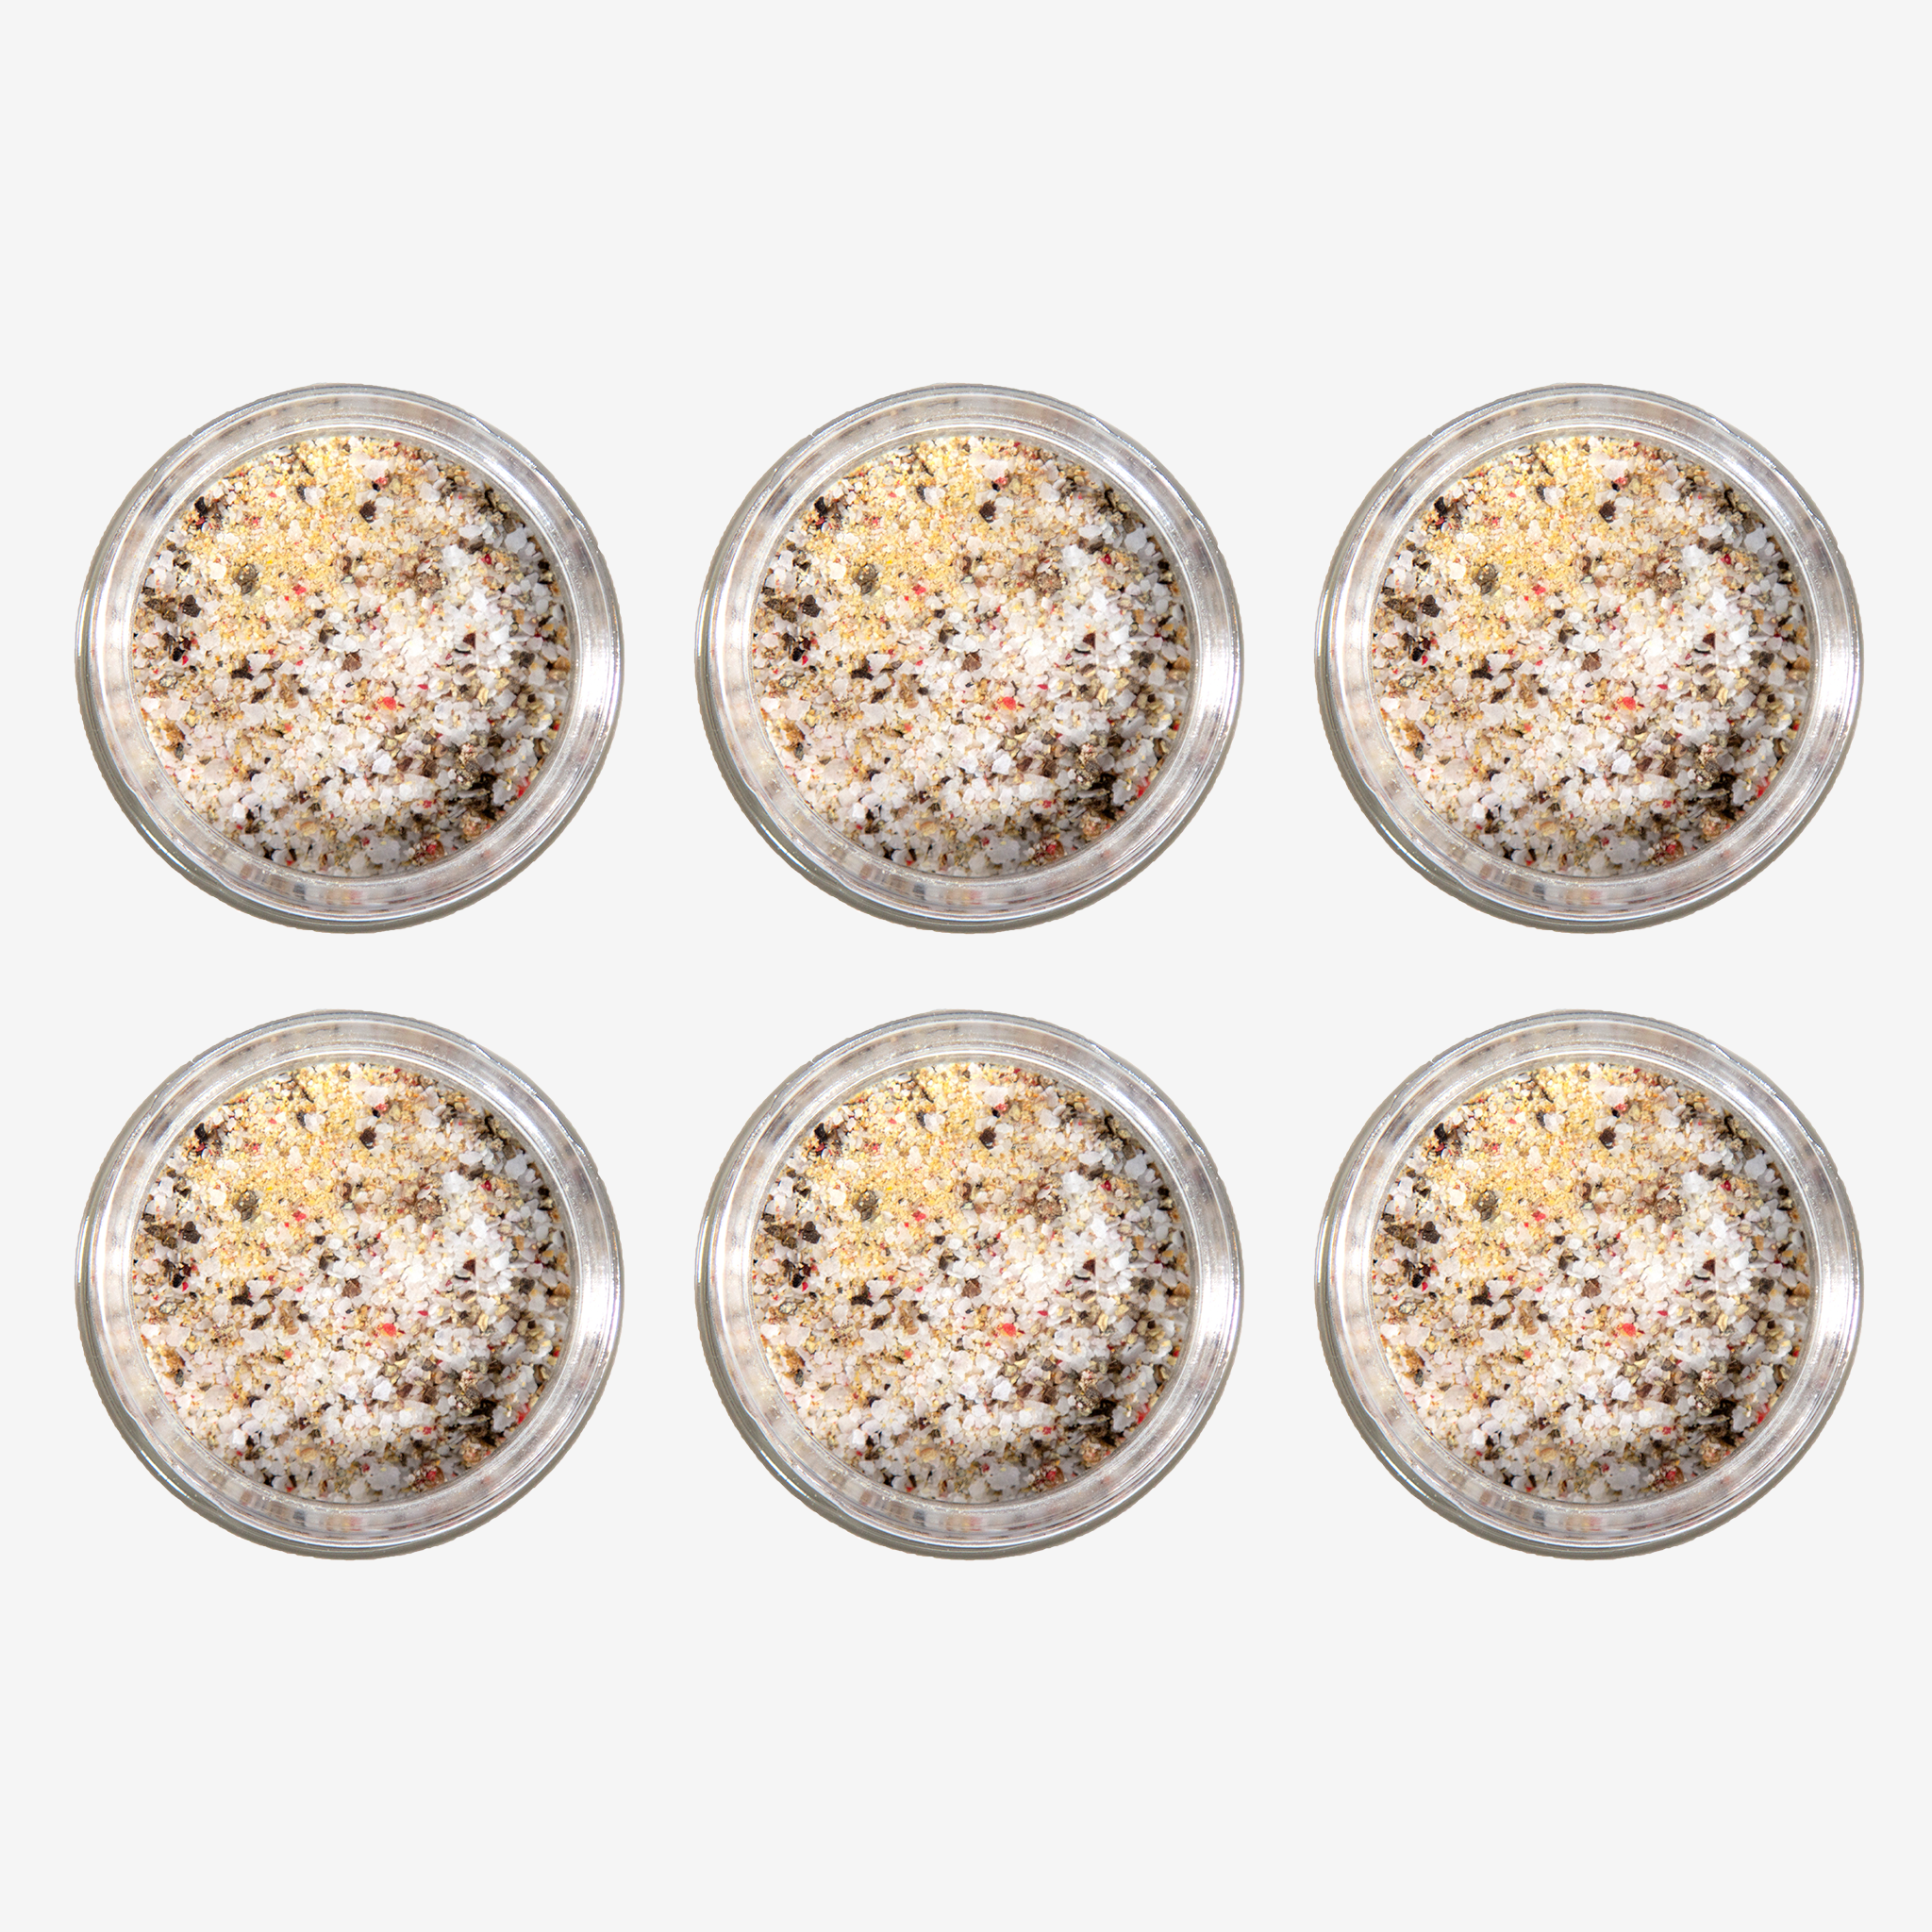 Sprinkle More, Save More! Six-Pack of 6 oz. Jars